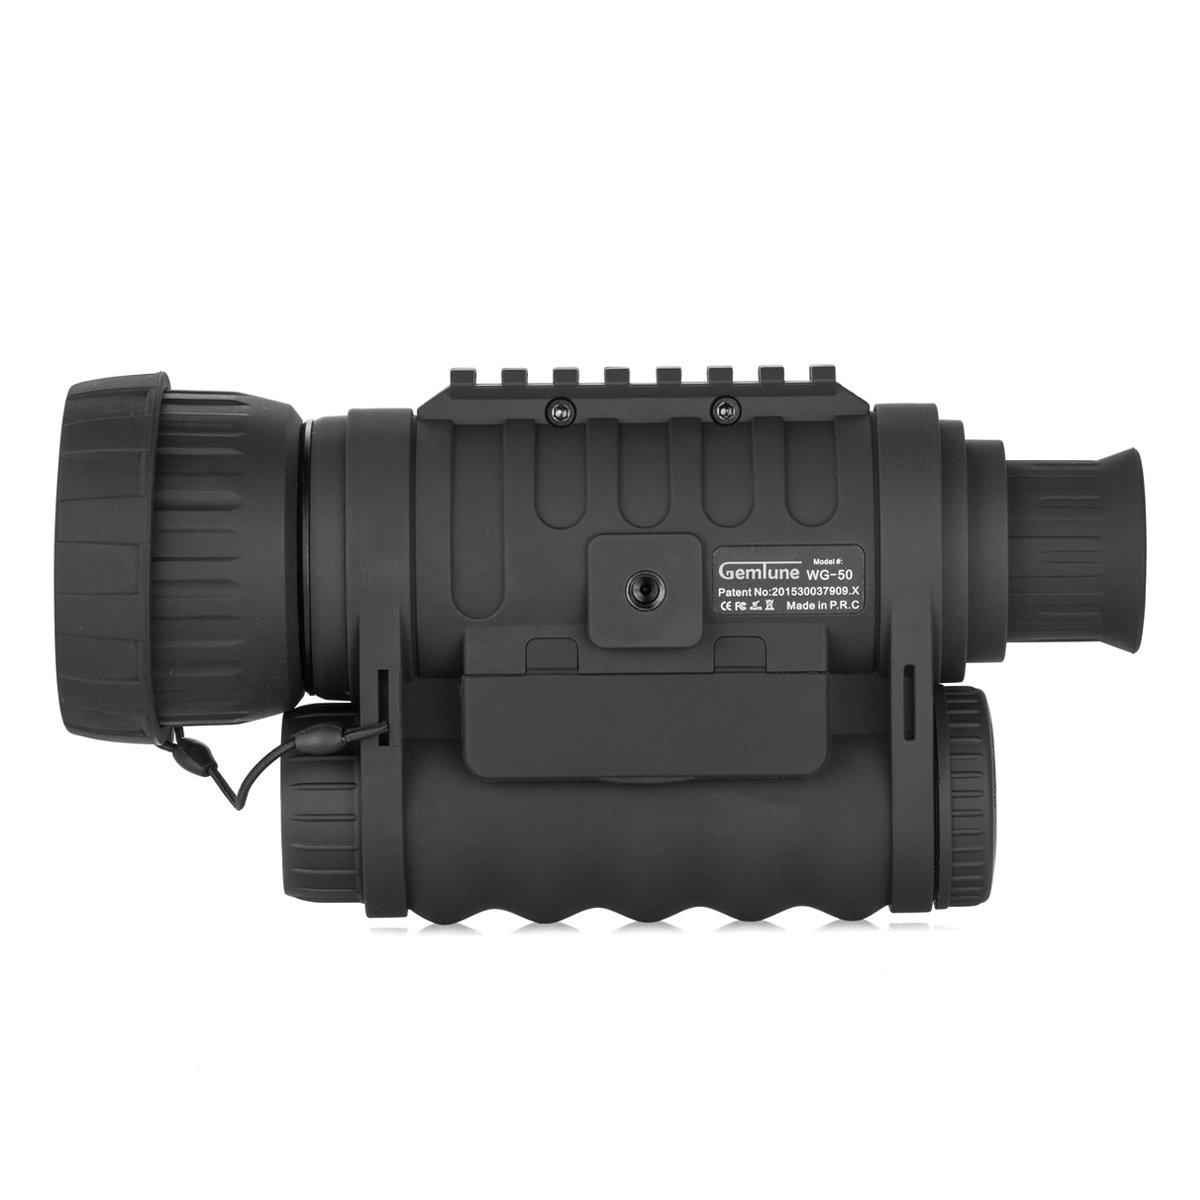 Gemtune WG-50 6x50mm HD Digital Night Vision Monocular with 1.5 inch TFT LCD Camera and Camcorder Function Takes 5mp Photo 720p Video from 350m Distance for night watching or observation by GemTune (Image #2)